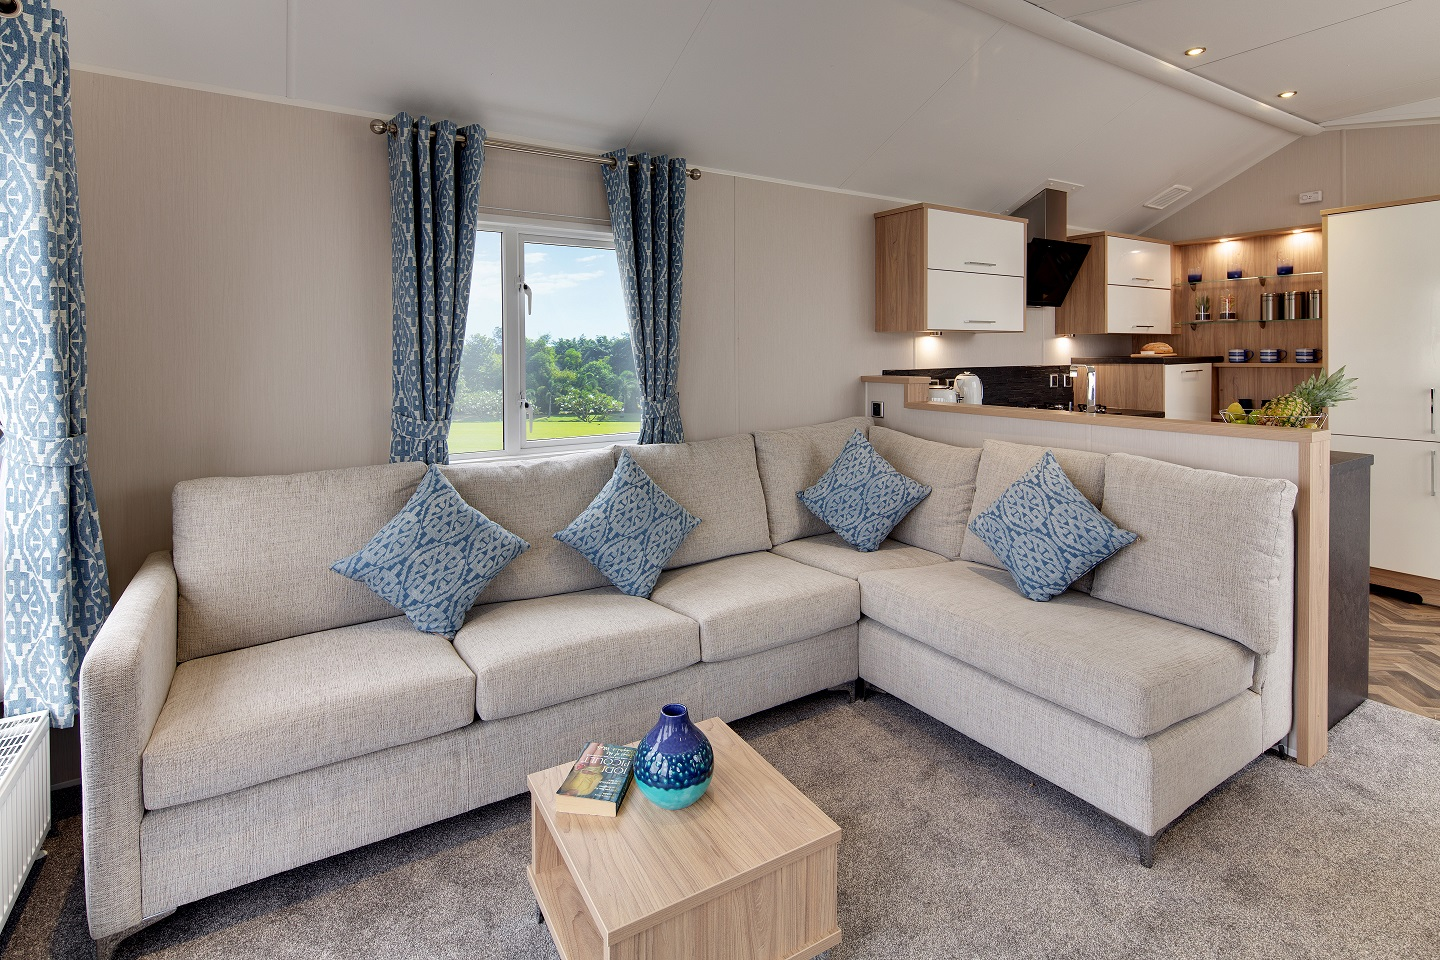 Willerby Linear ideal caravans available to order Large Image 2